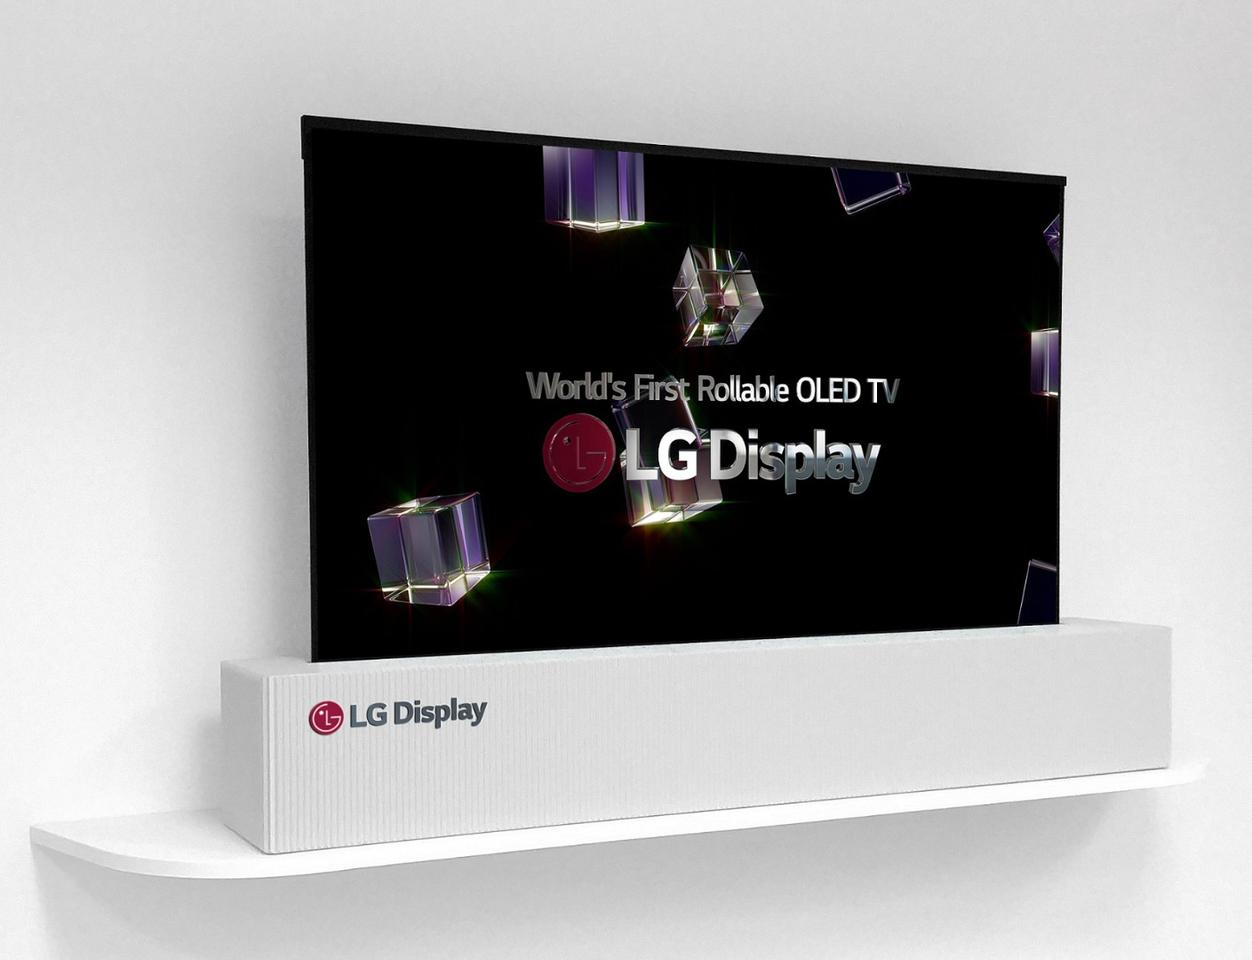 LG's rollable OLEDTV boasts a 65-inch screen when fully unfurled